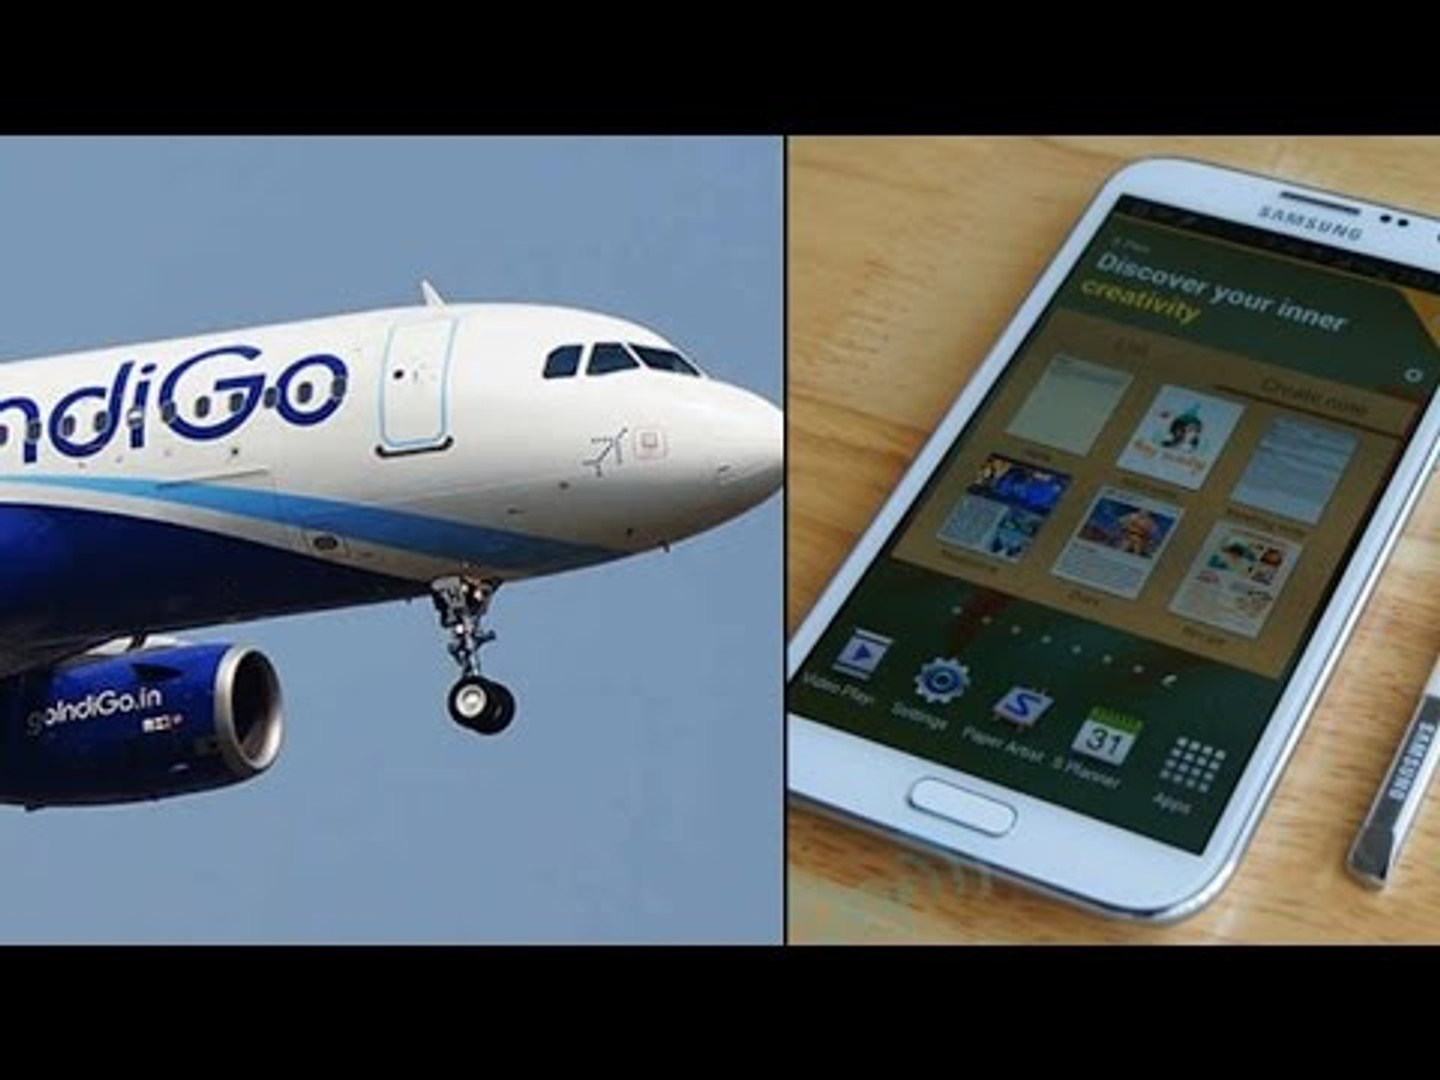 Samsung Note2 phone catches fire on Singapore-Chennai IndiGo flight | Oneindia News